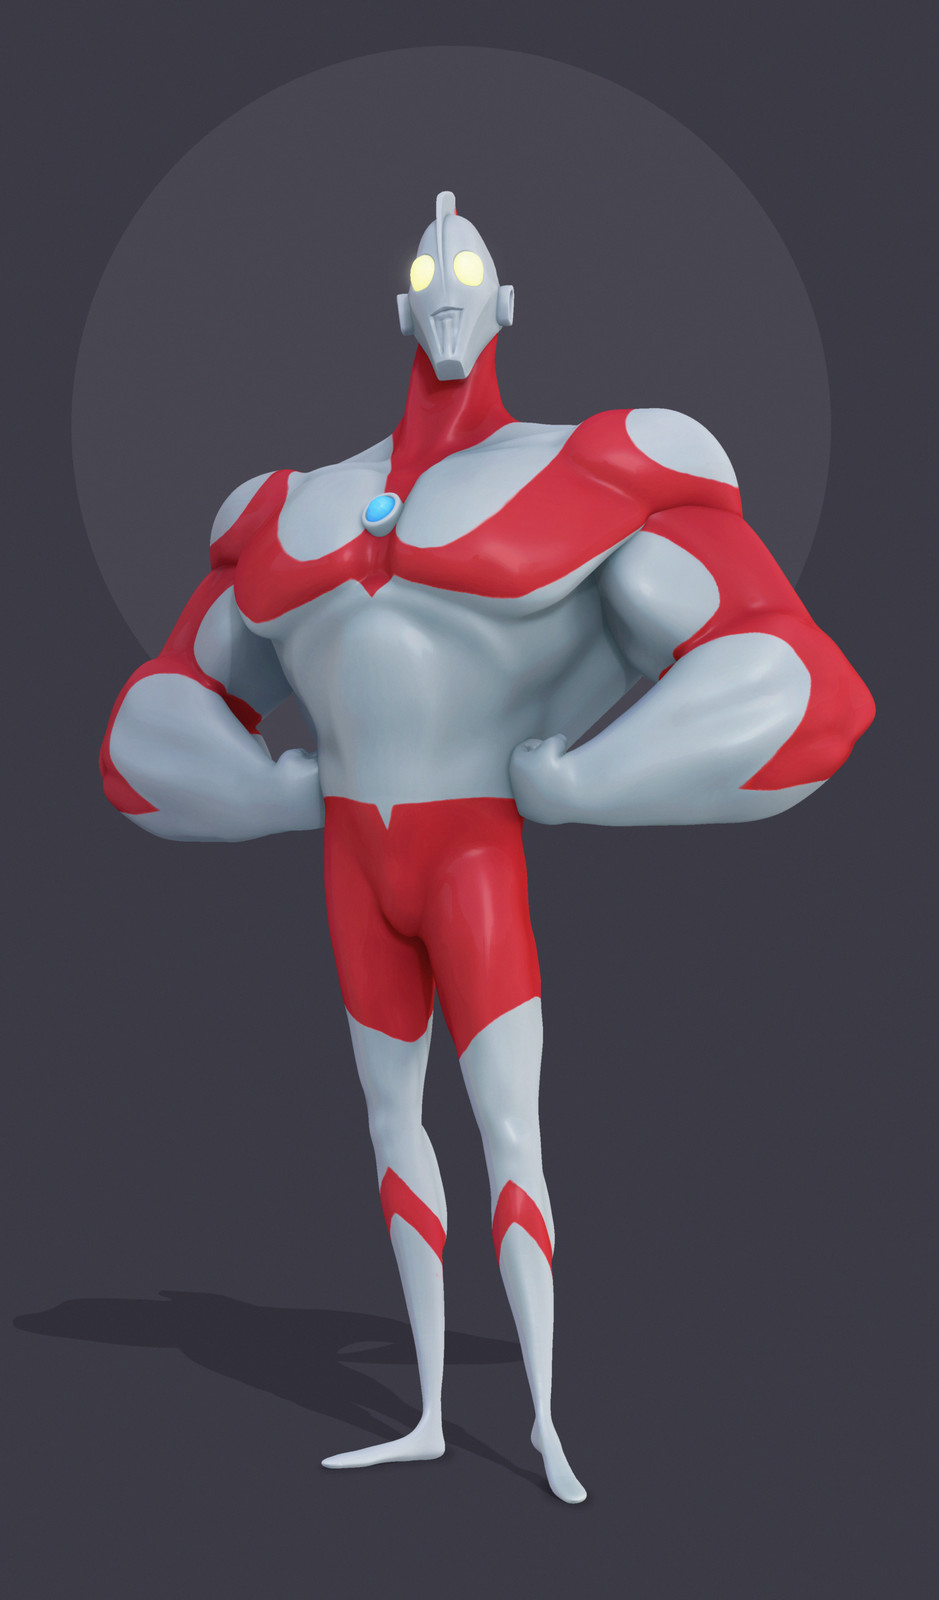 Ultraman | The Ultraman series